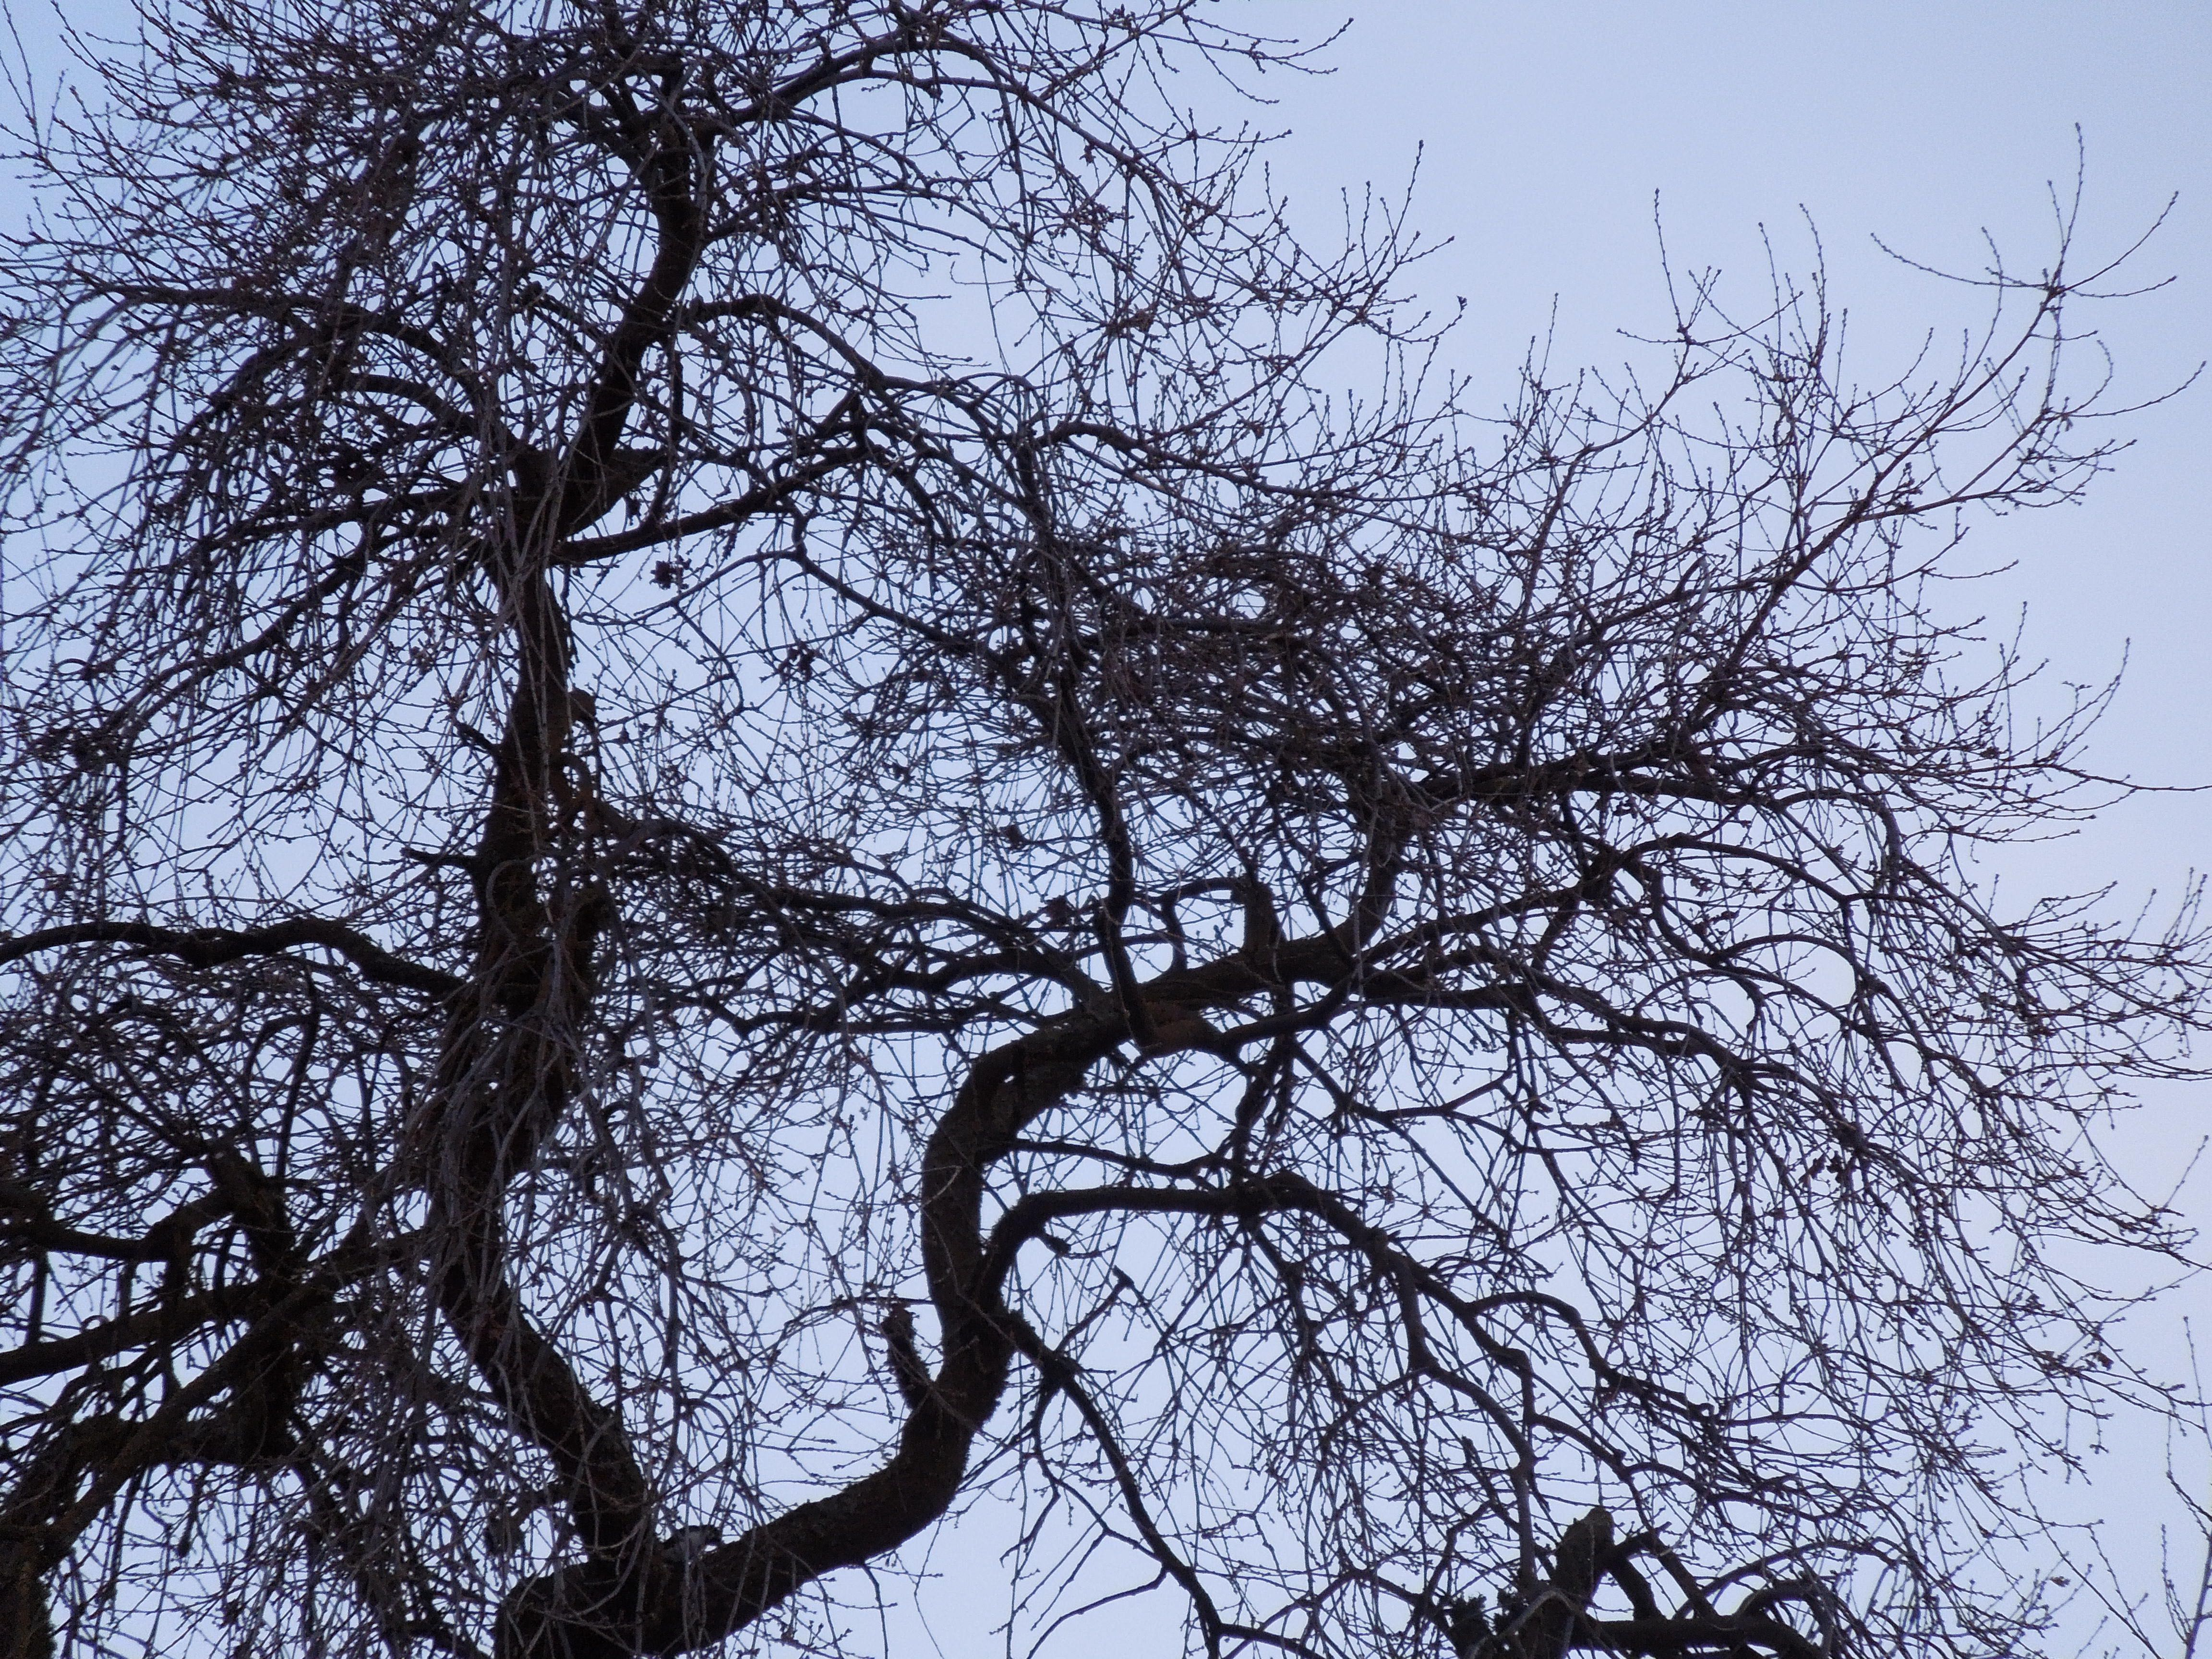 Bare Tree Branches in Winter Sky